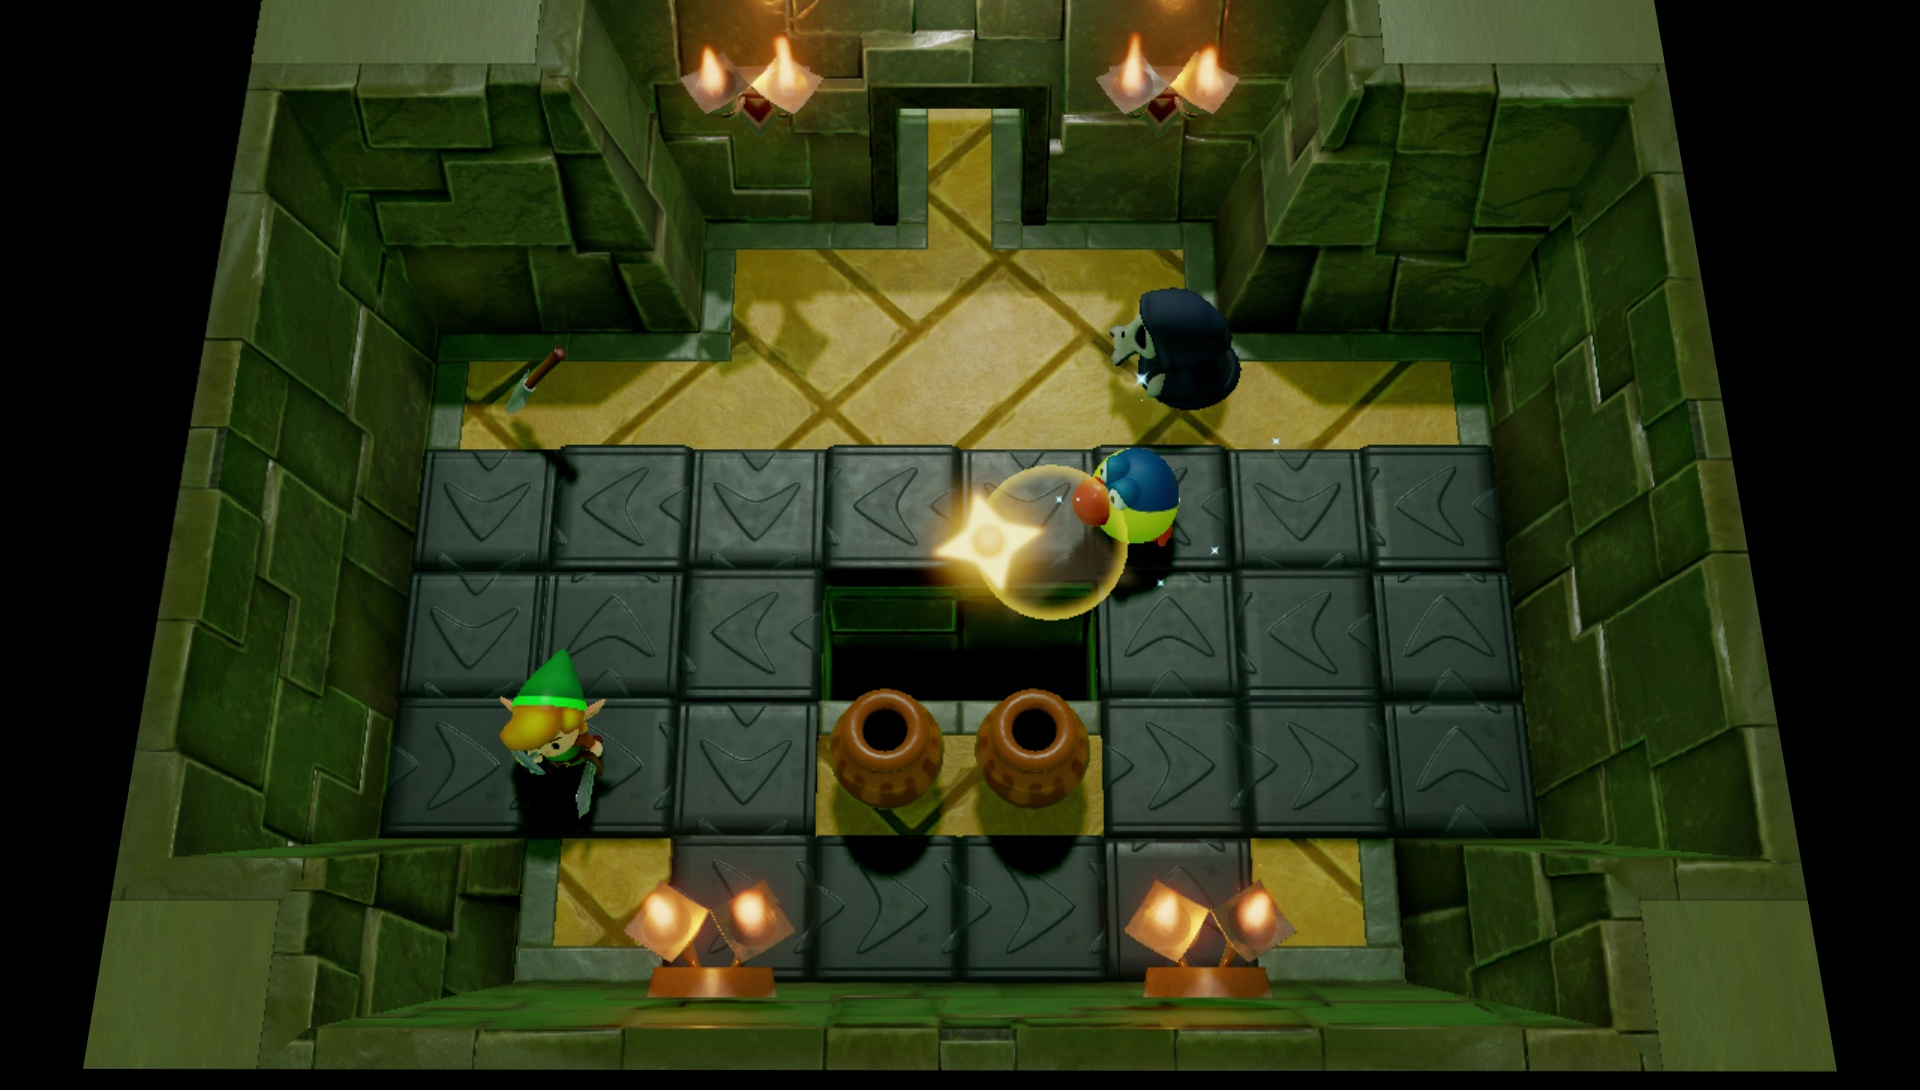 The Legend of Zelda: Link's Awakening remake coming to Nintendo